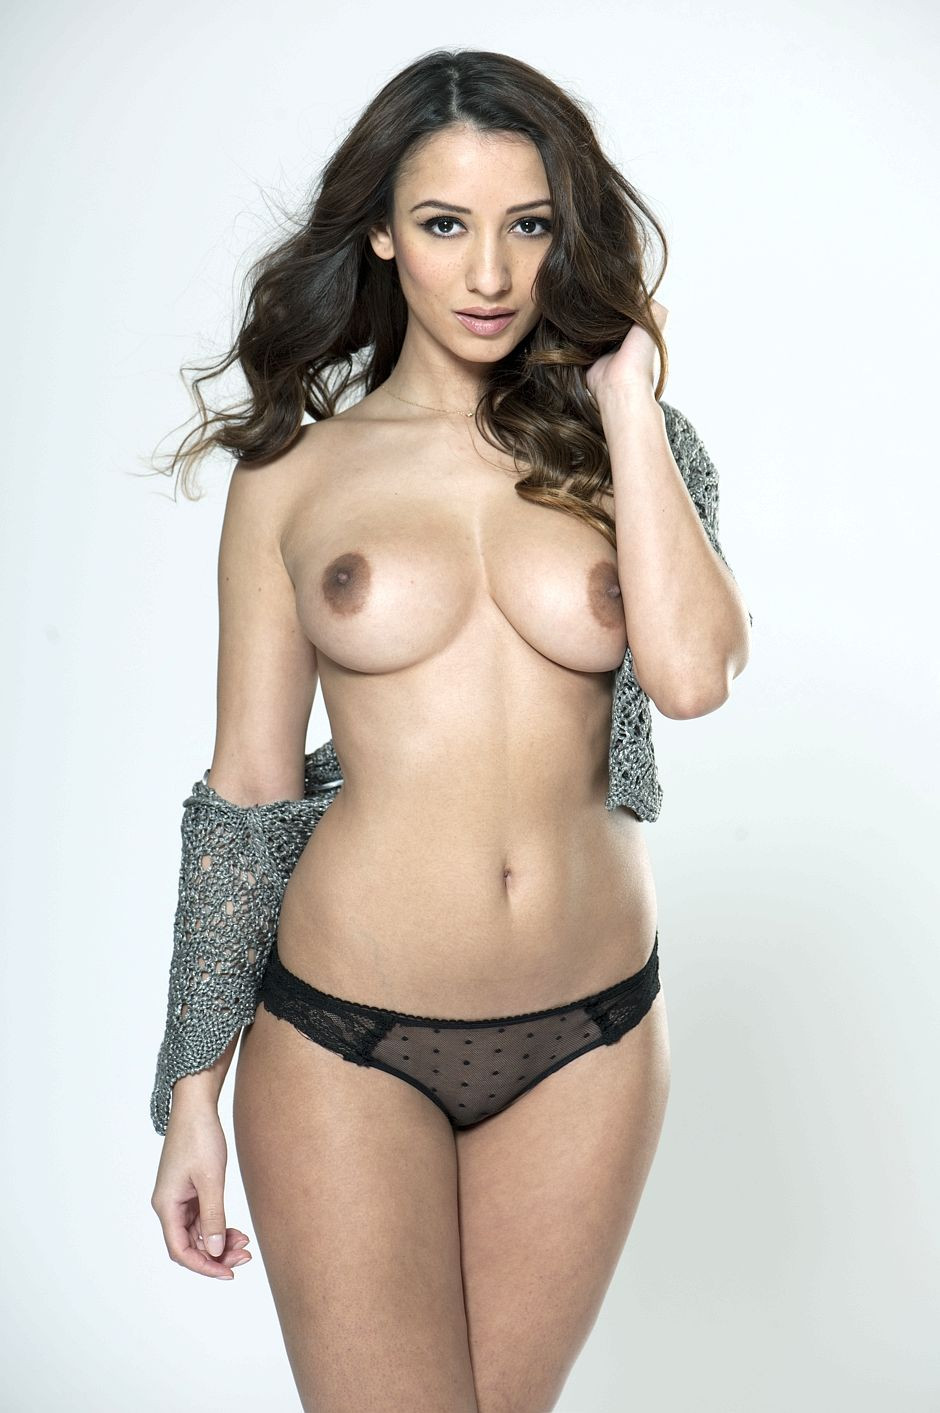 Nicola Paul Topless 9 TheFappening.nu